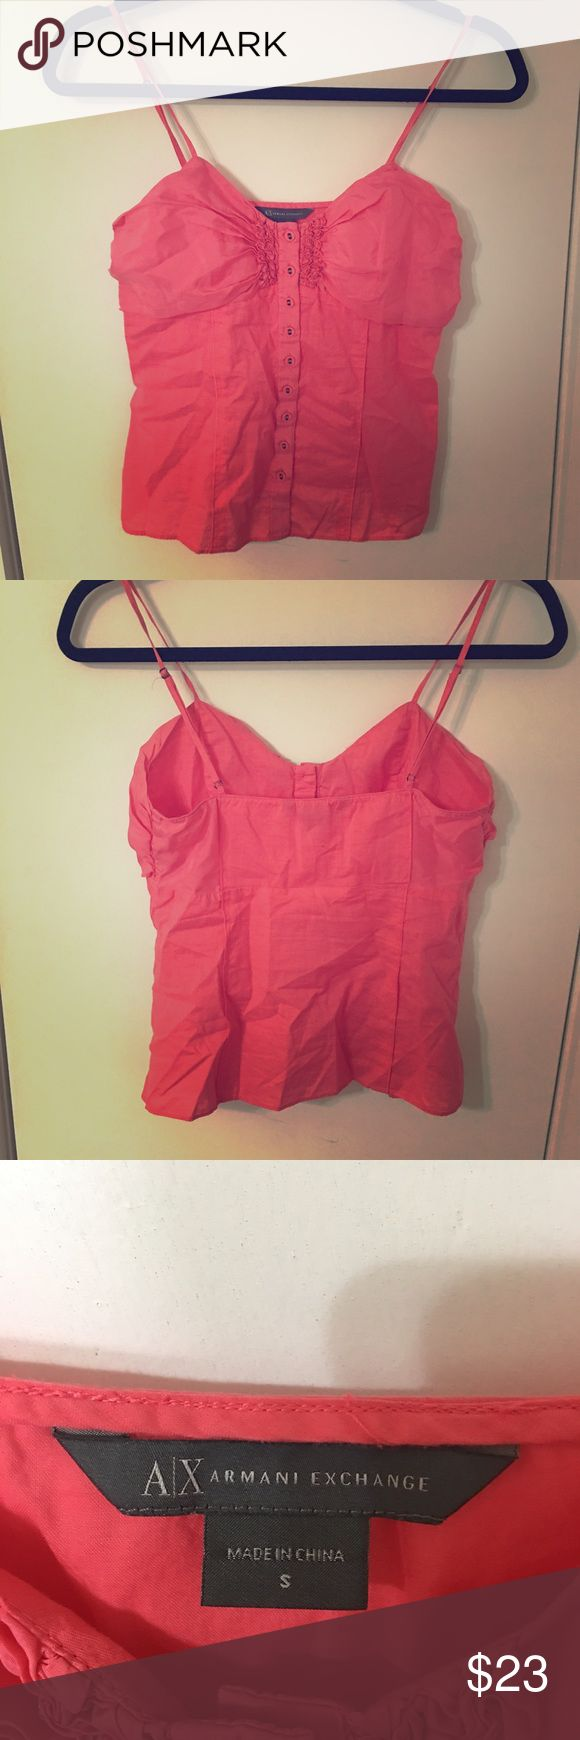 Armani Exchange Camisole size S Super cute pink Armani Exchange camisole size small. Fantastic used condition no spots or holes. Armani Exchange Tops Camisoles